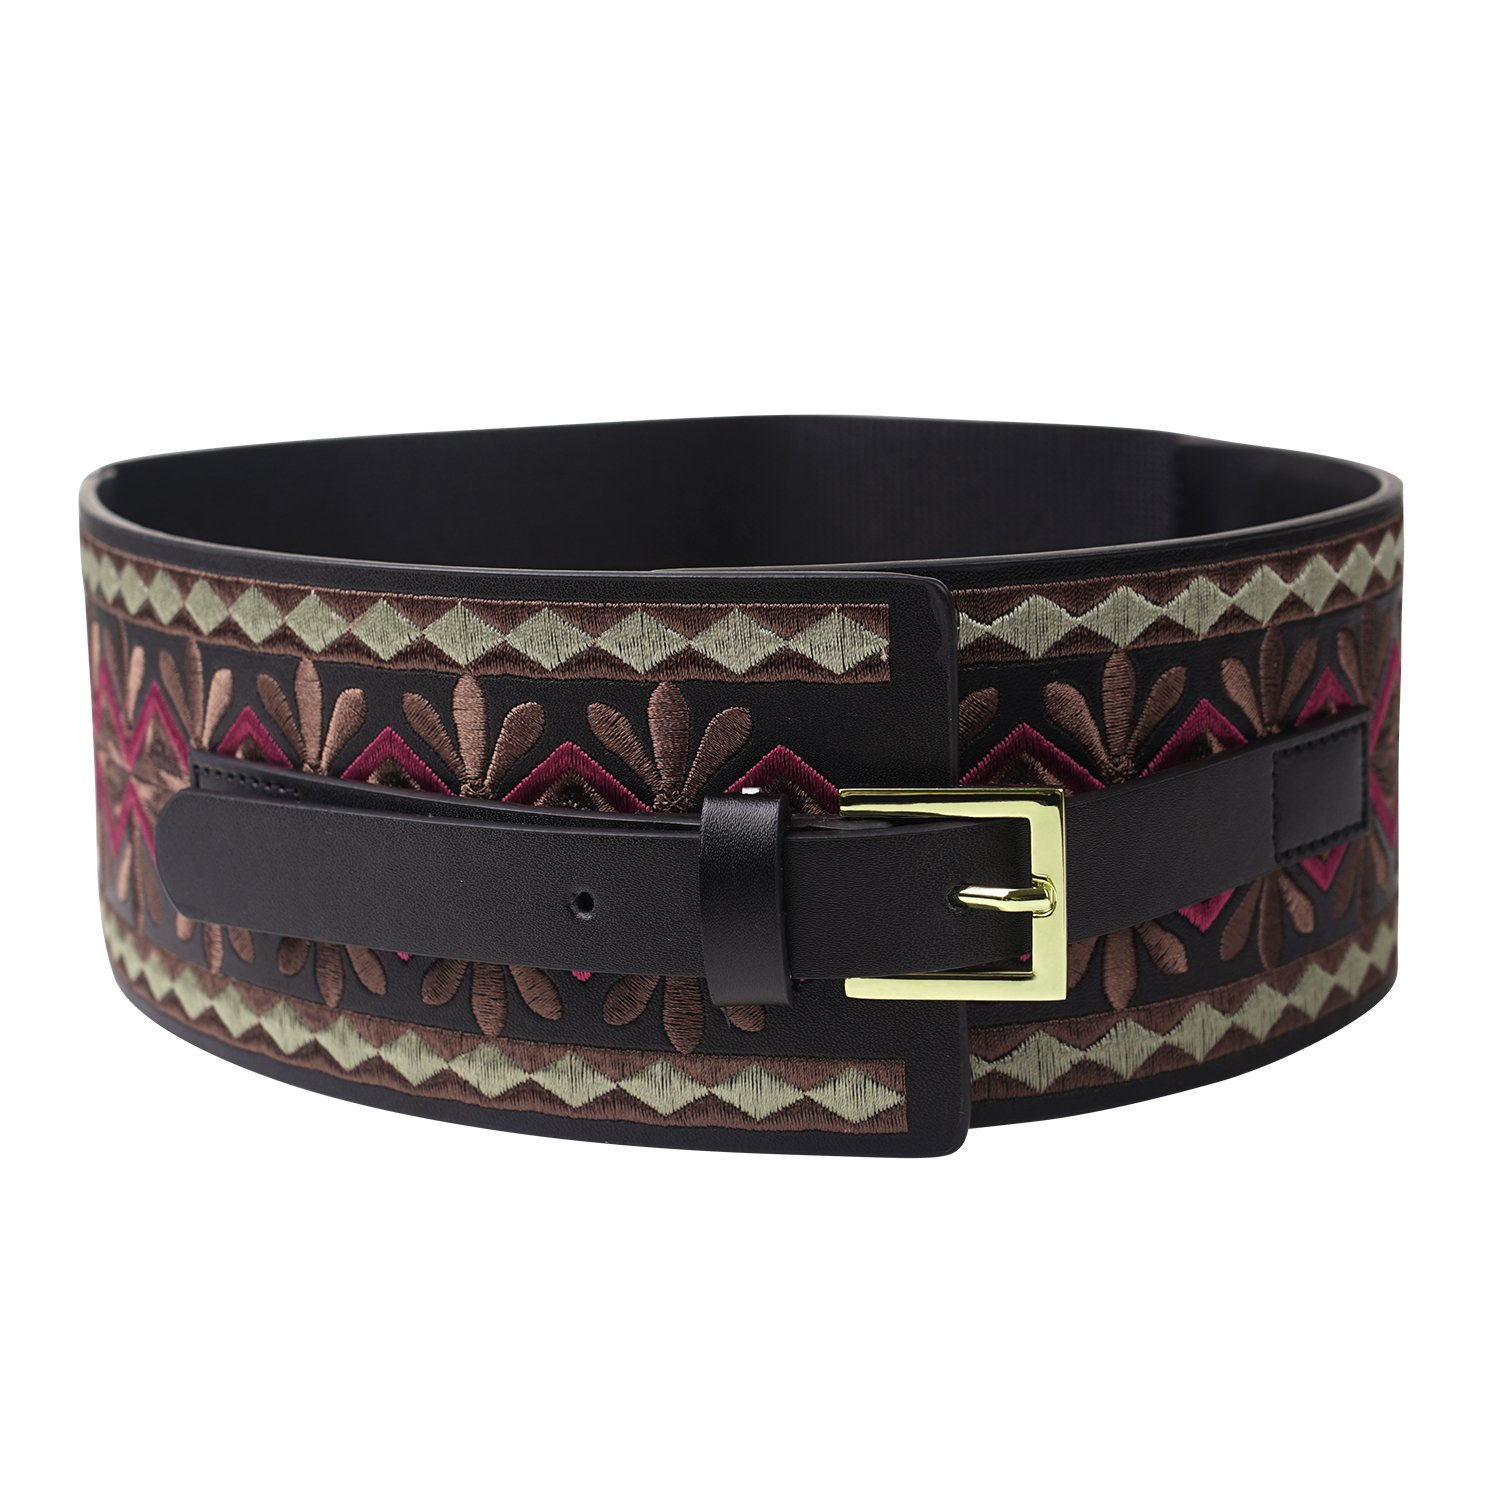 Fioretto Valentine's Day Gift - Renaissance Fair Women's Wide Embroidered Genuine Cowhide Leather Belt - DeluxeAdultCostumes.com